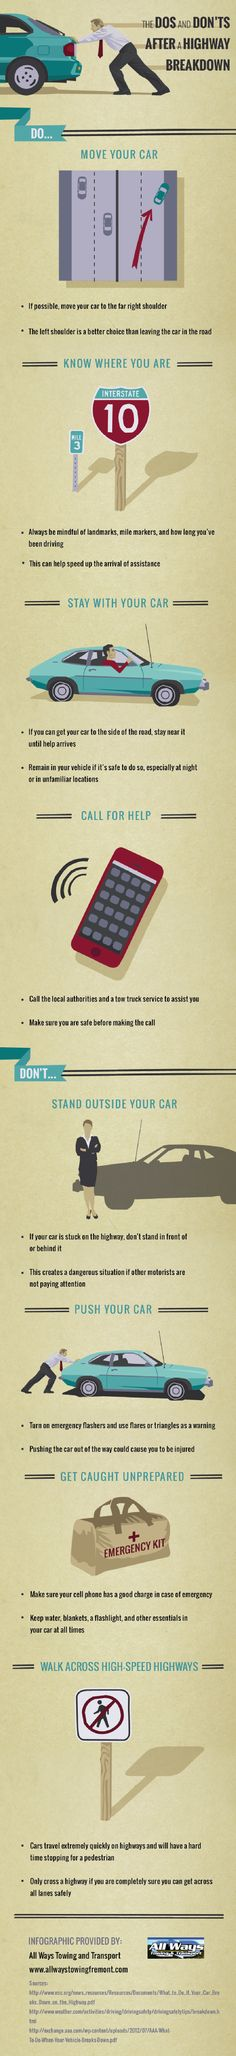 Should you stay with your car if it breaks down on the highway? If possible, move your car to the side of the road and stay near it until help arrives. Click on this infographic to learn more about handling emergency situations on the highway.